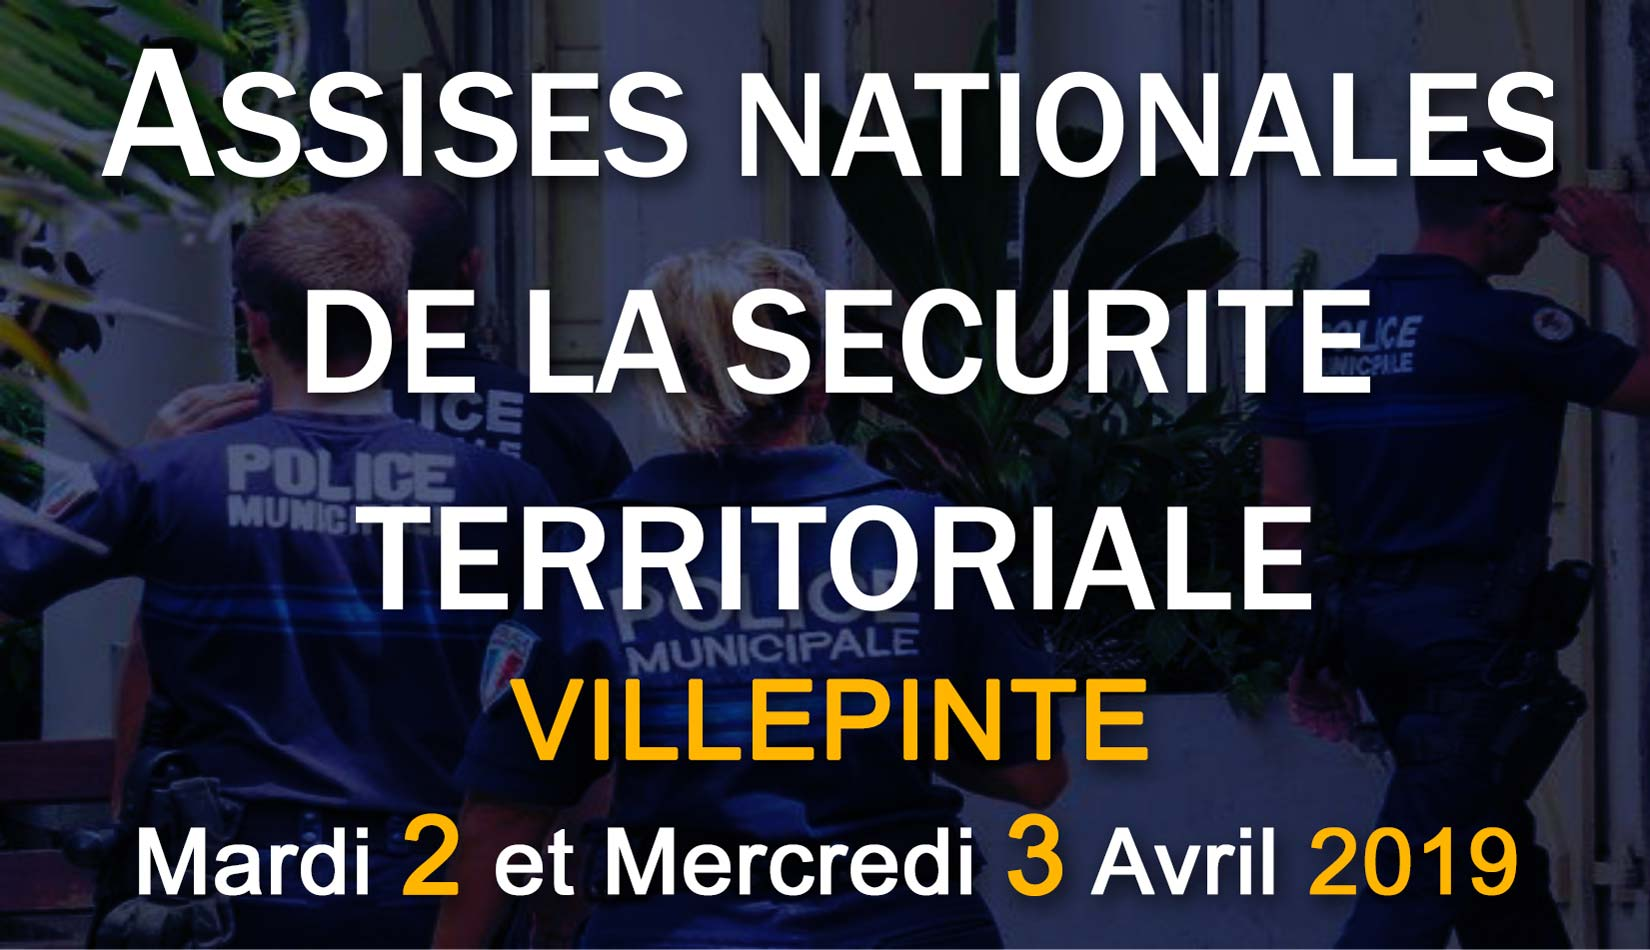 ASSISES-NATIONALES-DE-LA-SECURITE-TERRITORIALE-VILLEPINTE-2019